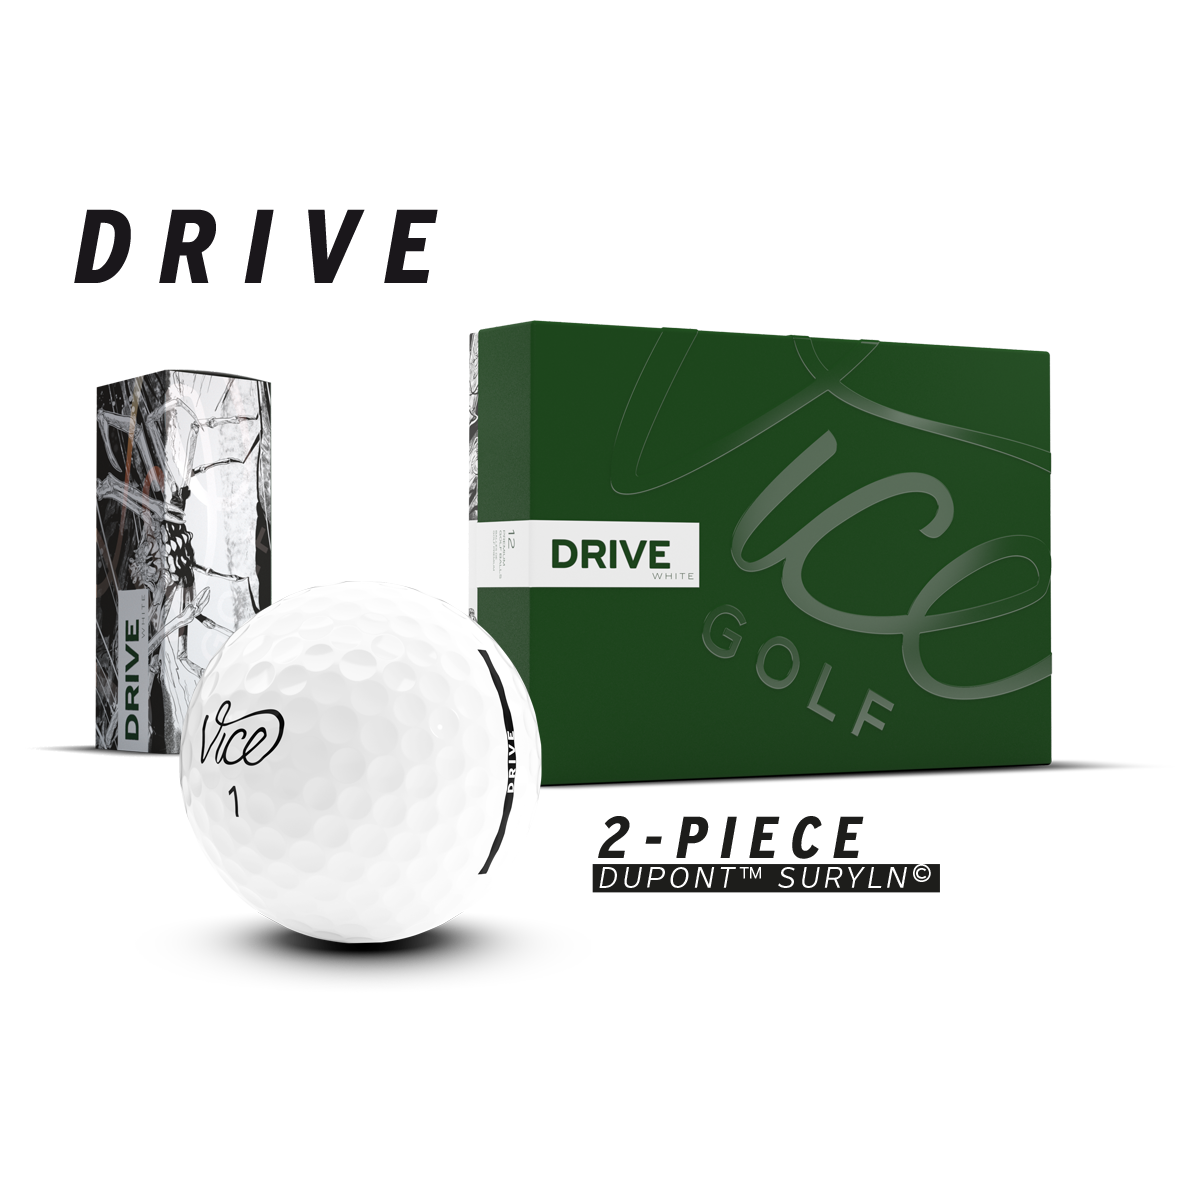 Drive package